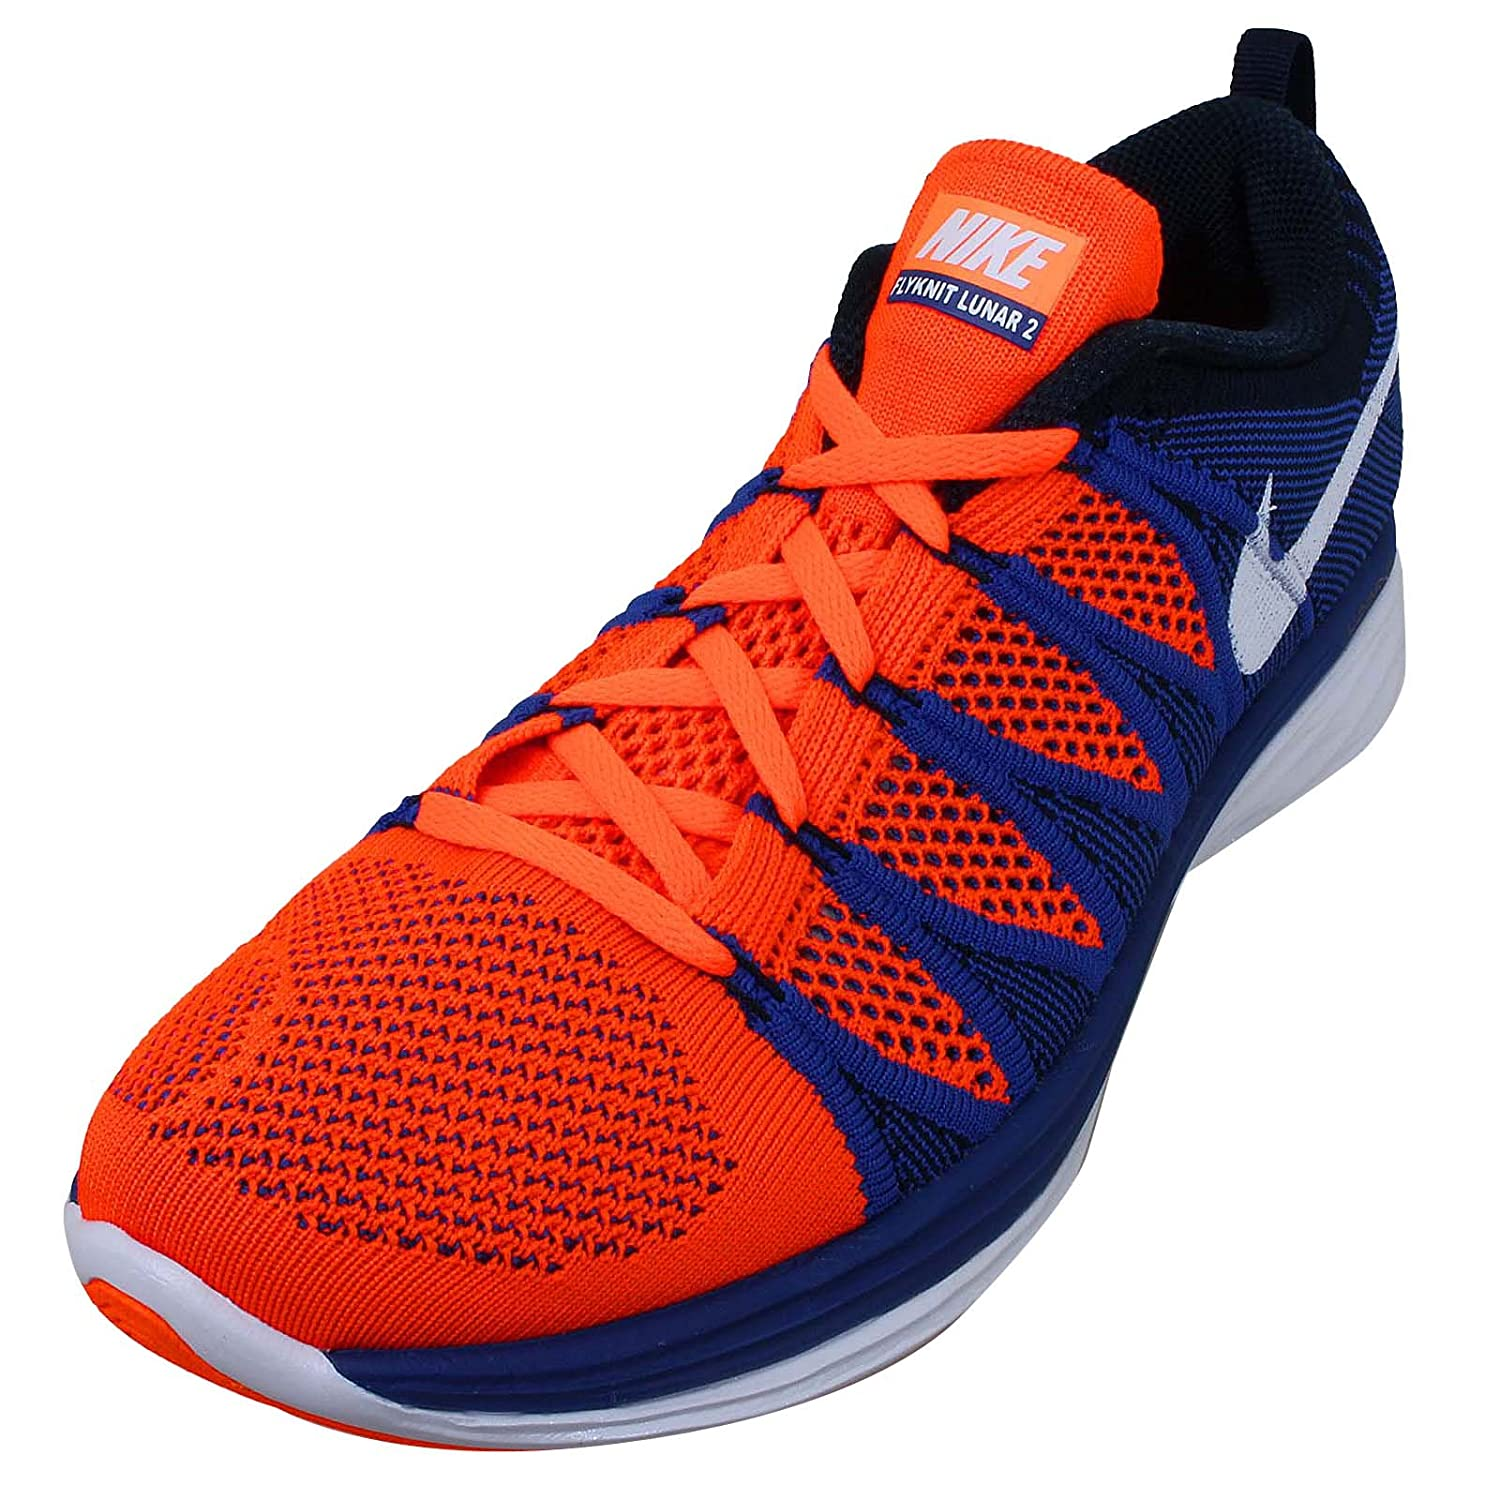 1372f1f225b8 ... where to buy amazon nike flyknit lunar 2 mens running shoes road  running 479d2 0f5de